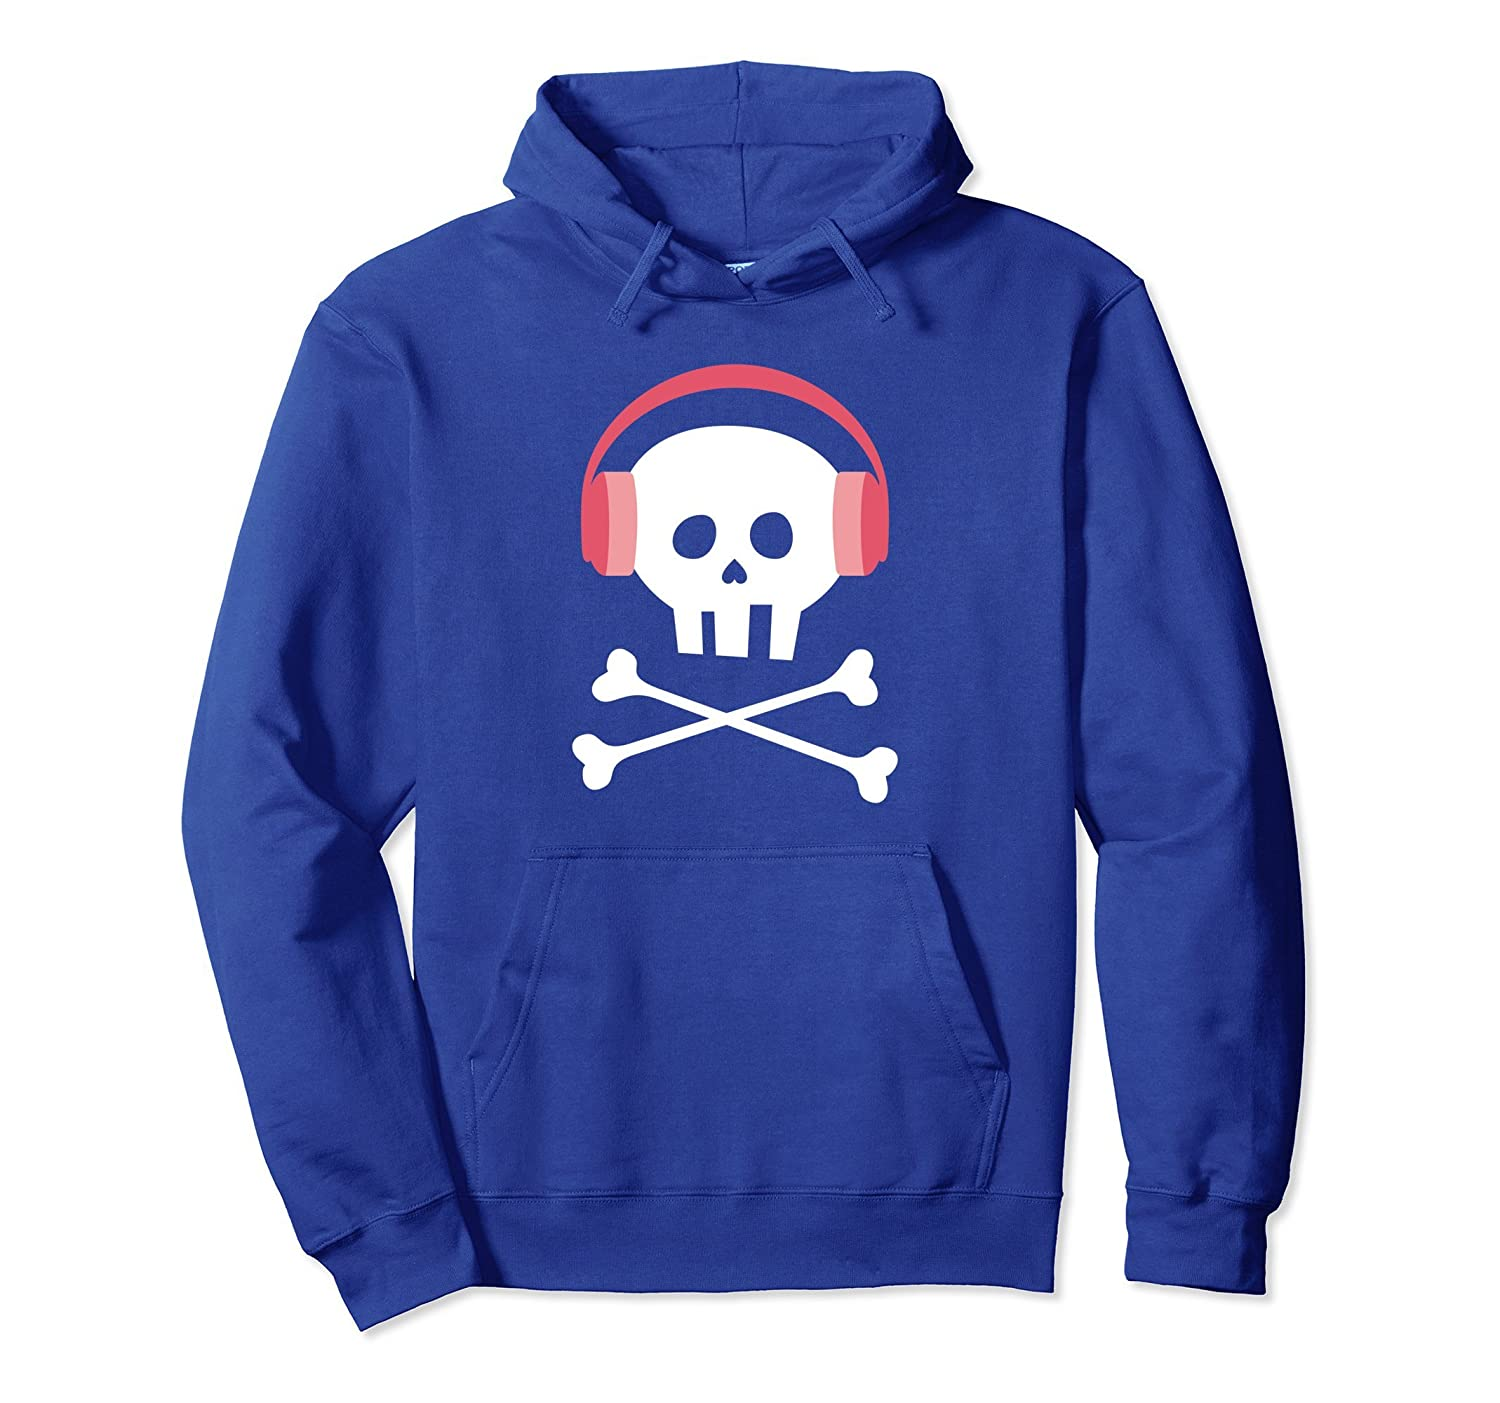 Cute Skull with Headphones Hoodie for Girls and Women-mt